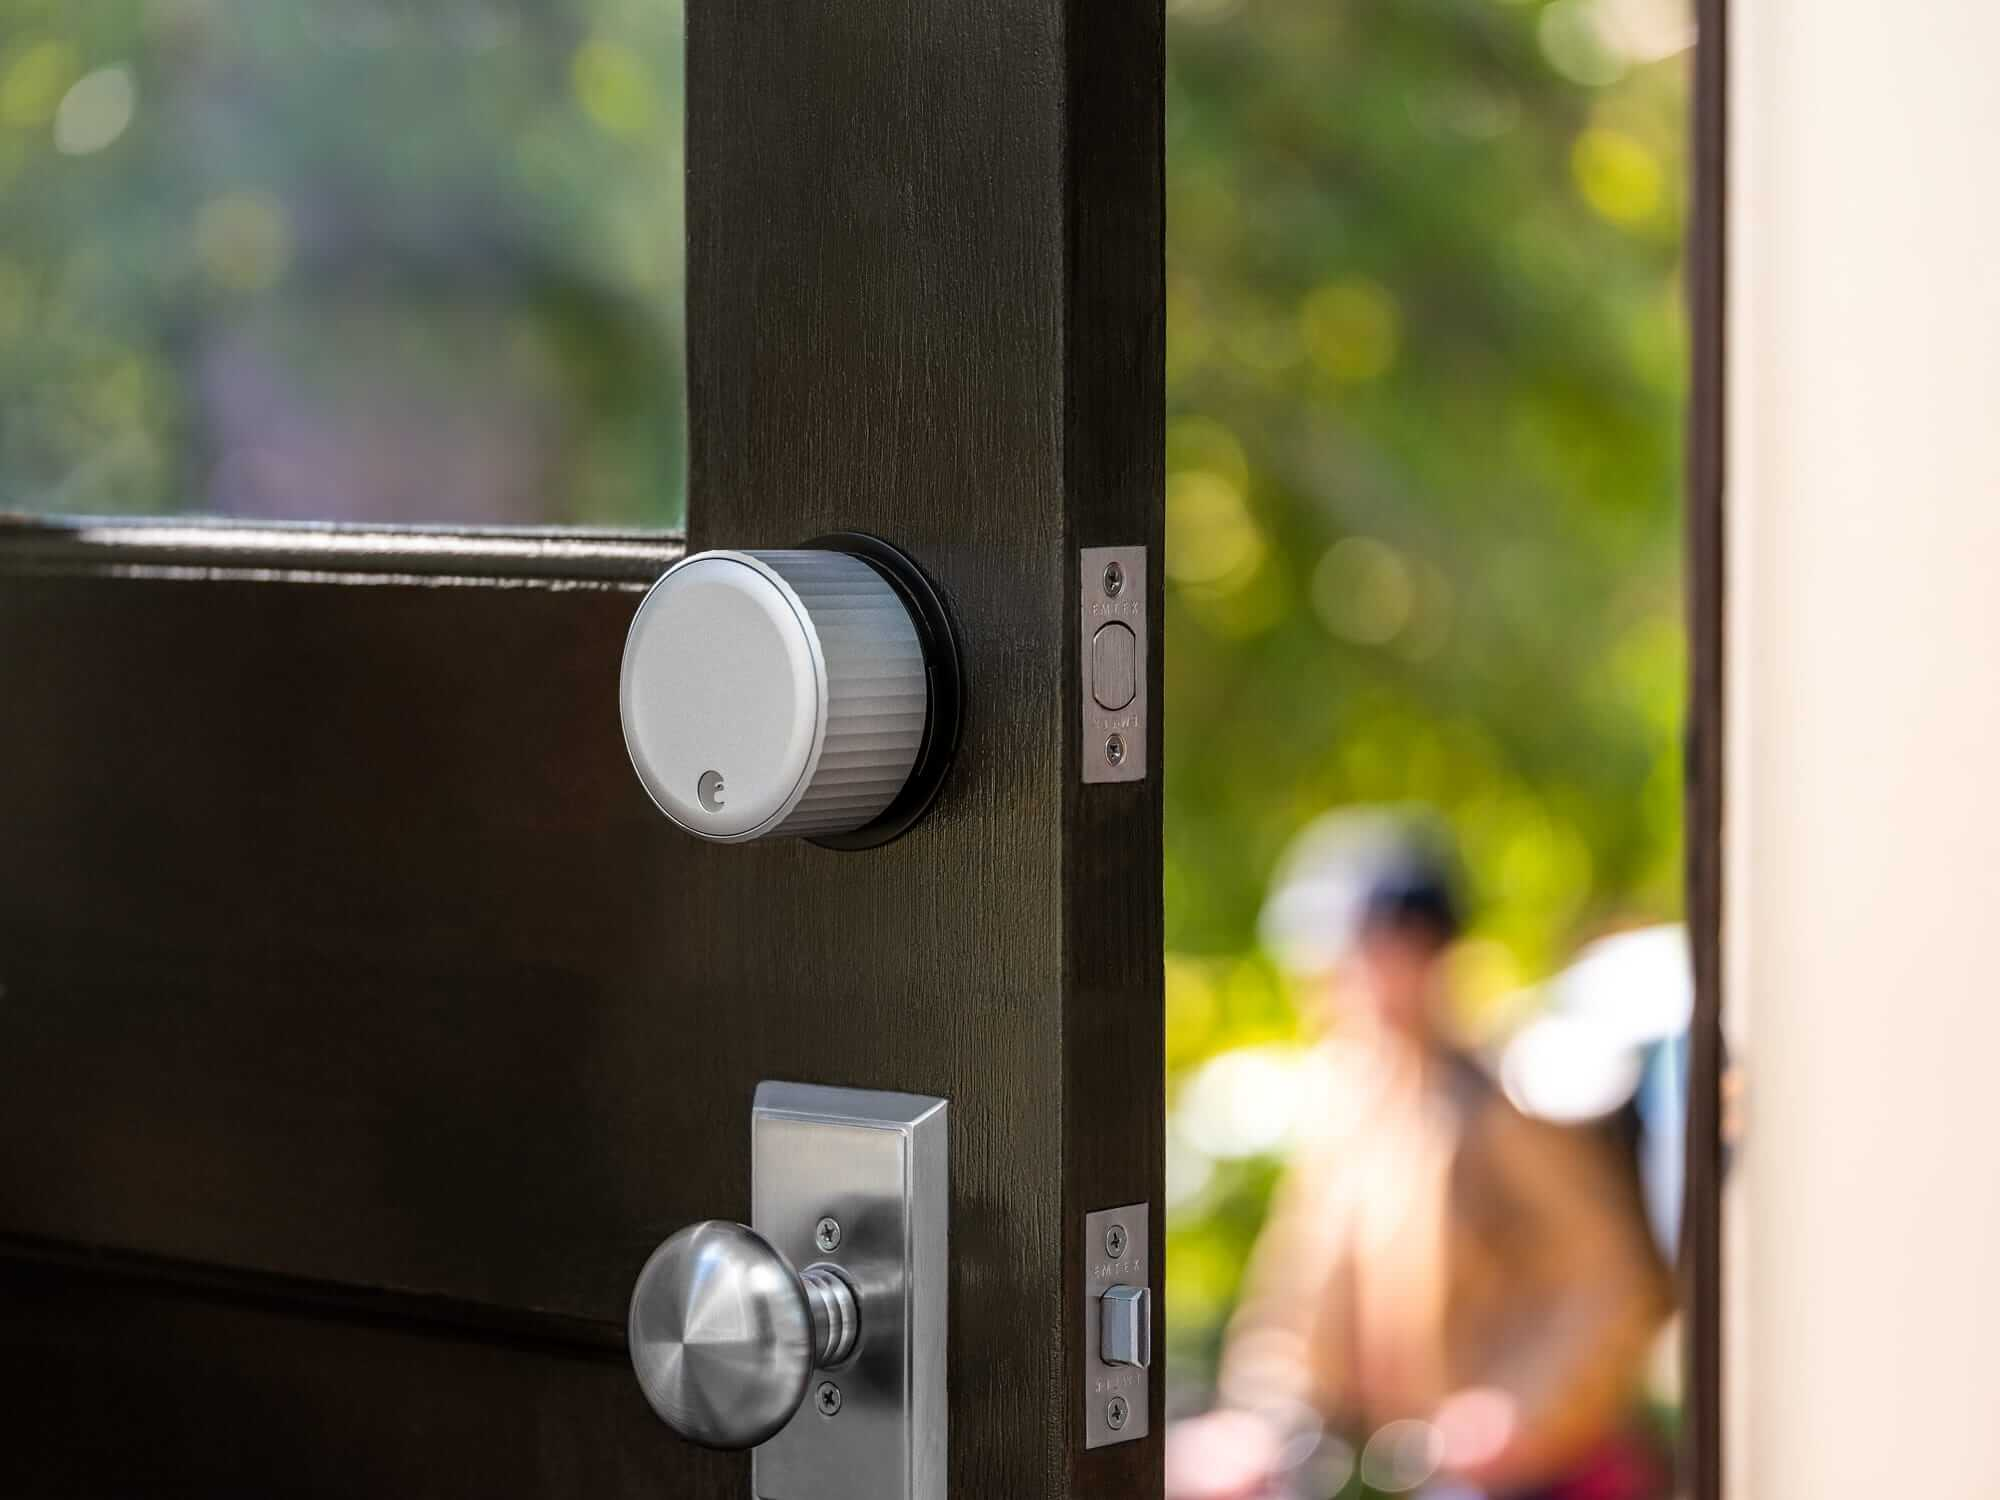 August Wi-Fi Smart Lock on a front door that is partially open showing a blurred person in the background